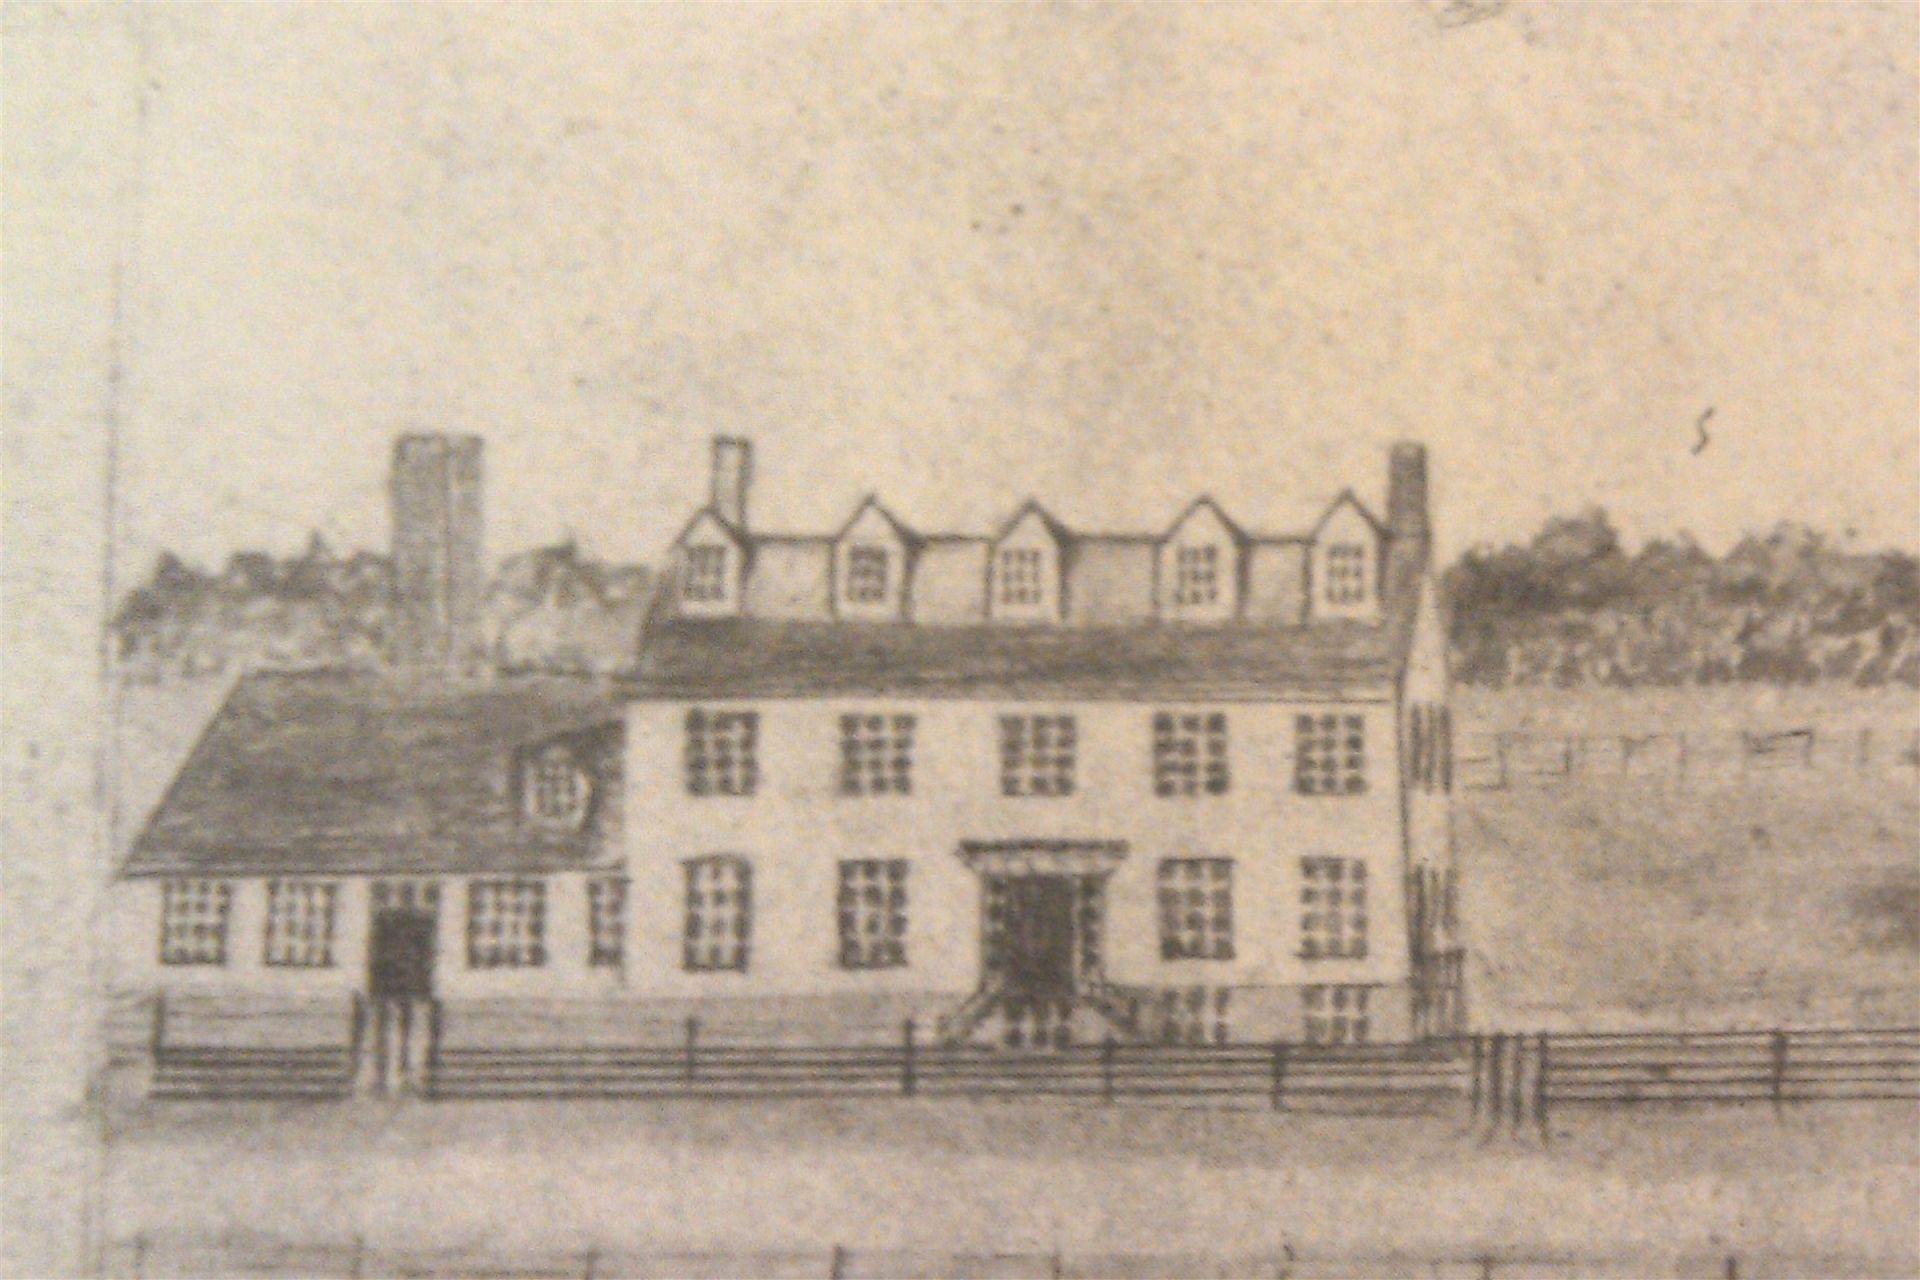 The original building is pictured here with the 1836 addition.